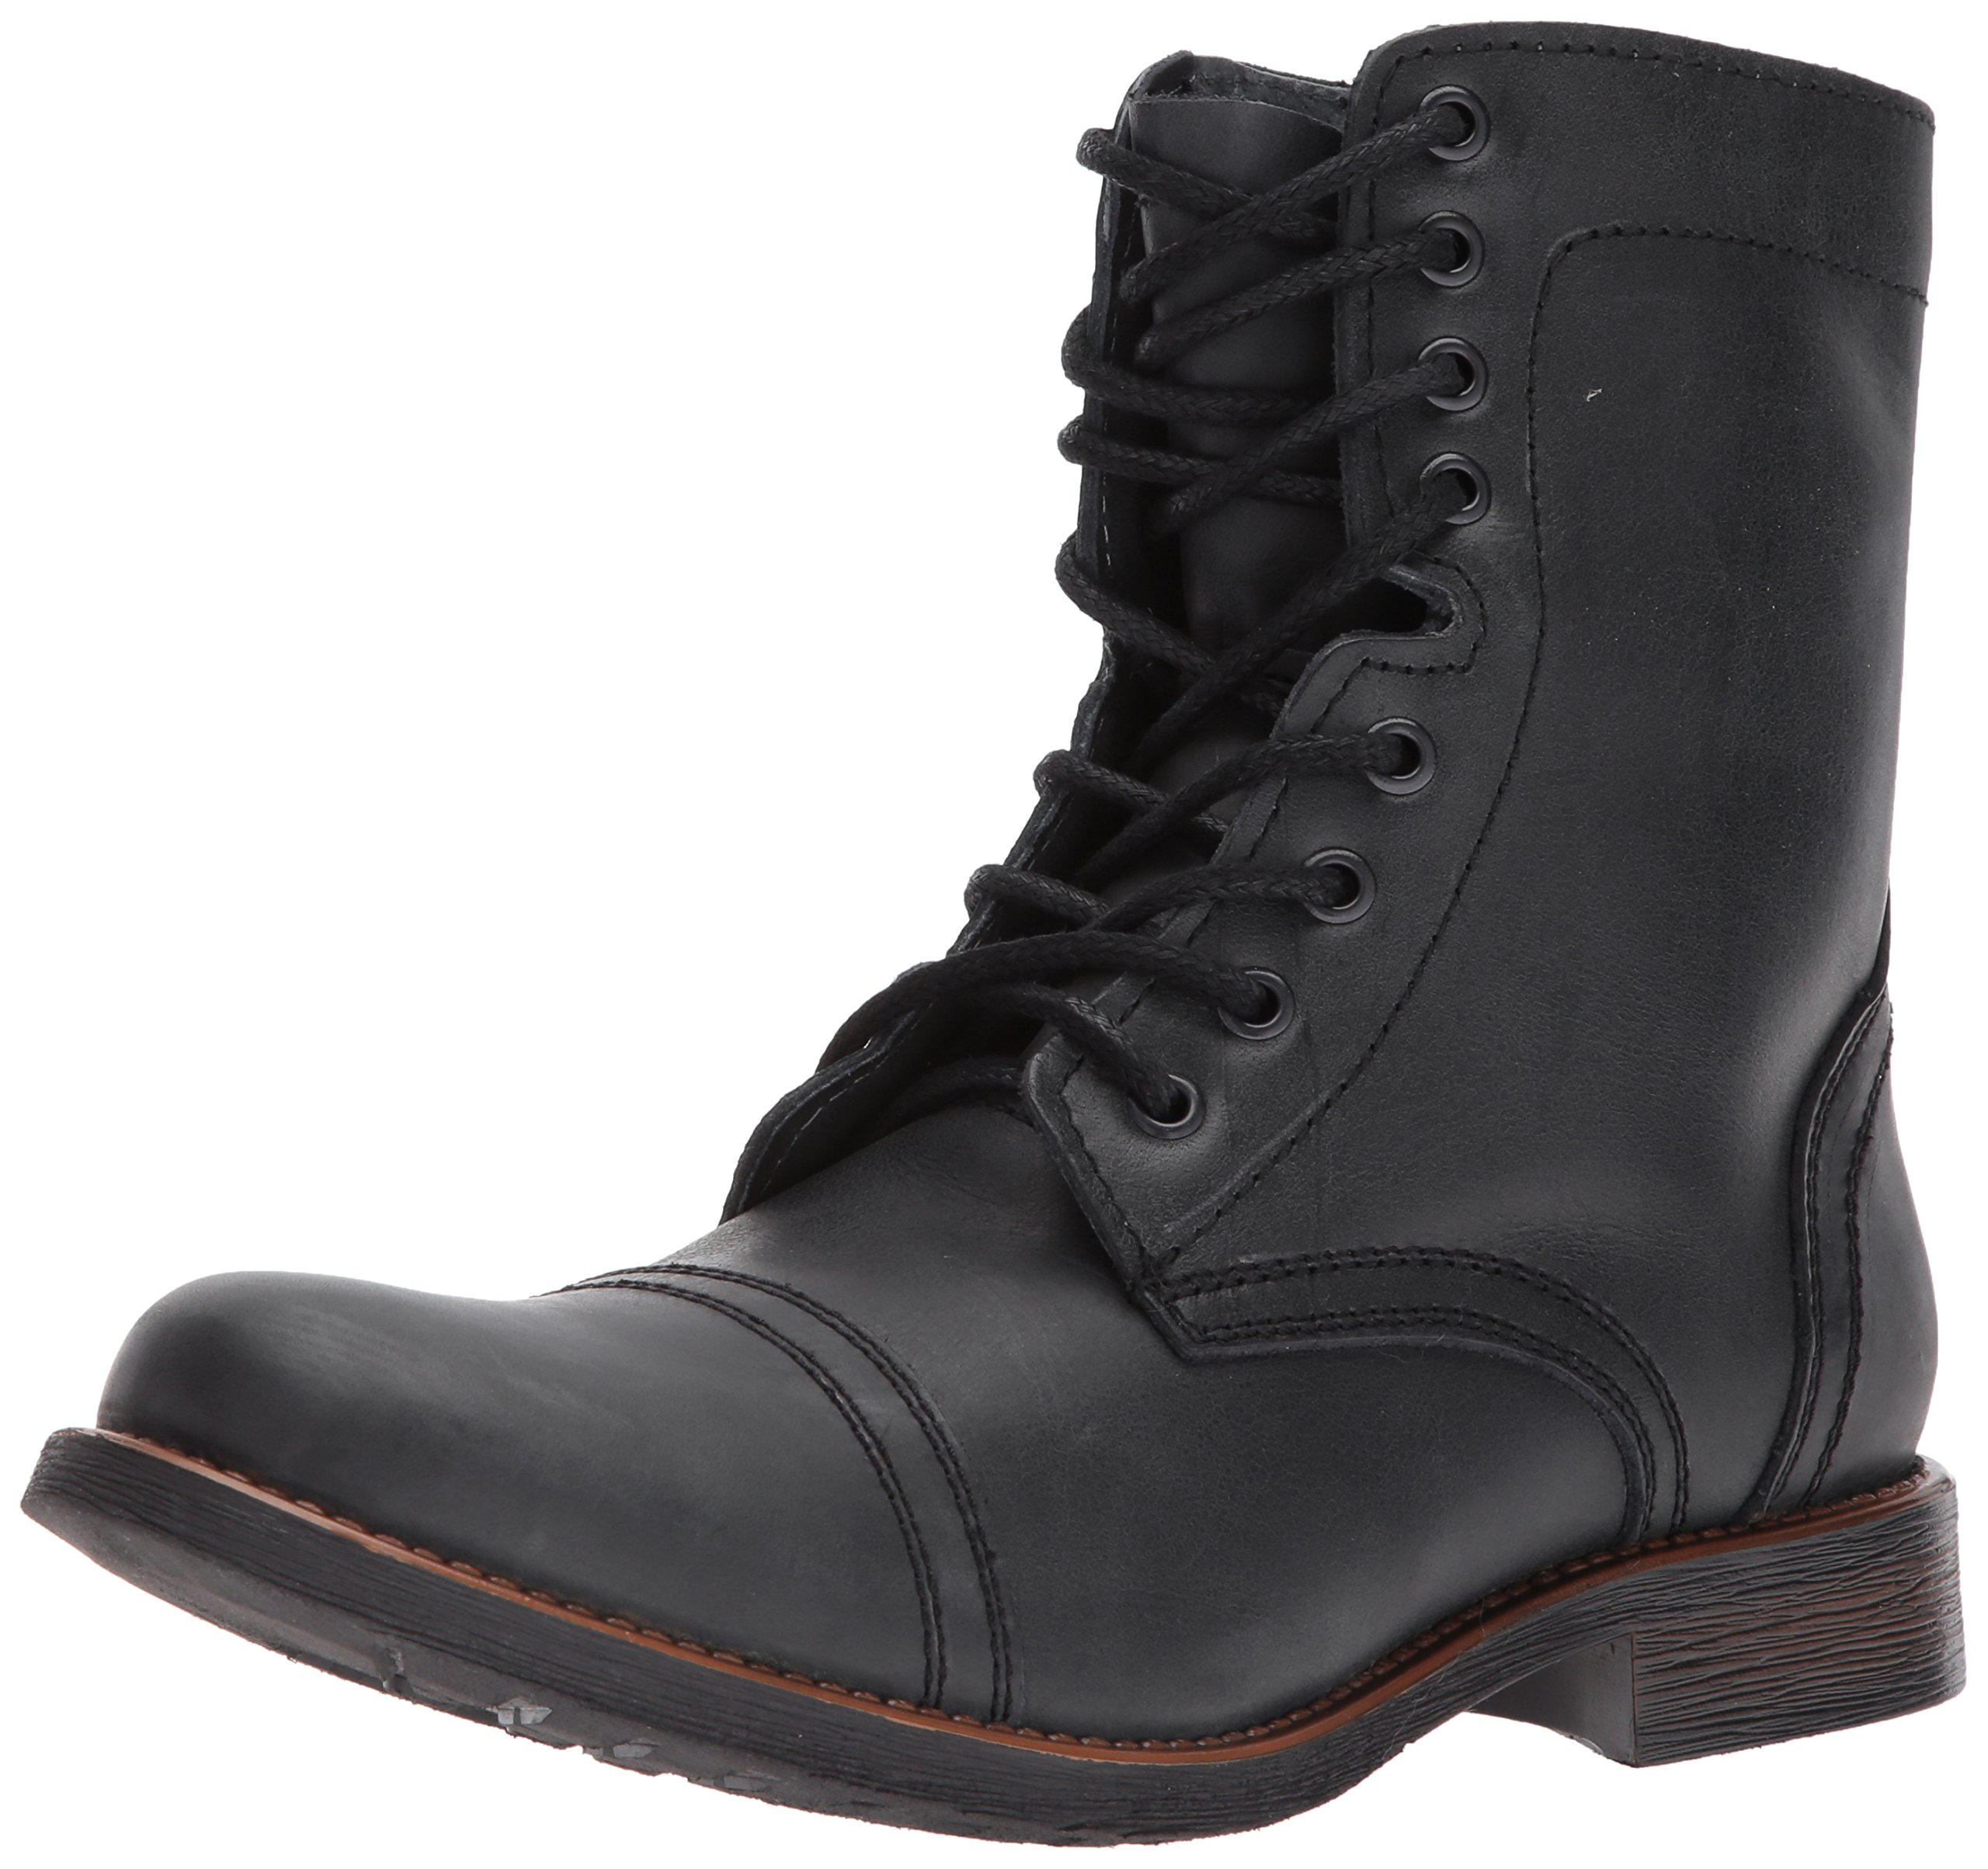 Steve Madden Men's Troopah-C Combat Boot, Black Leather, 10.5 M US